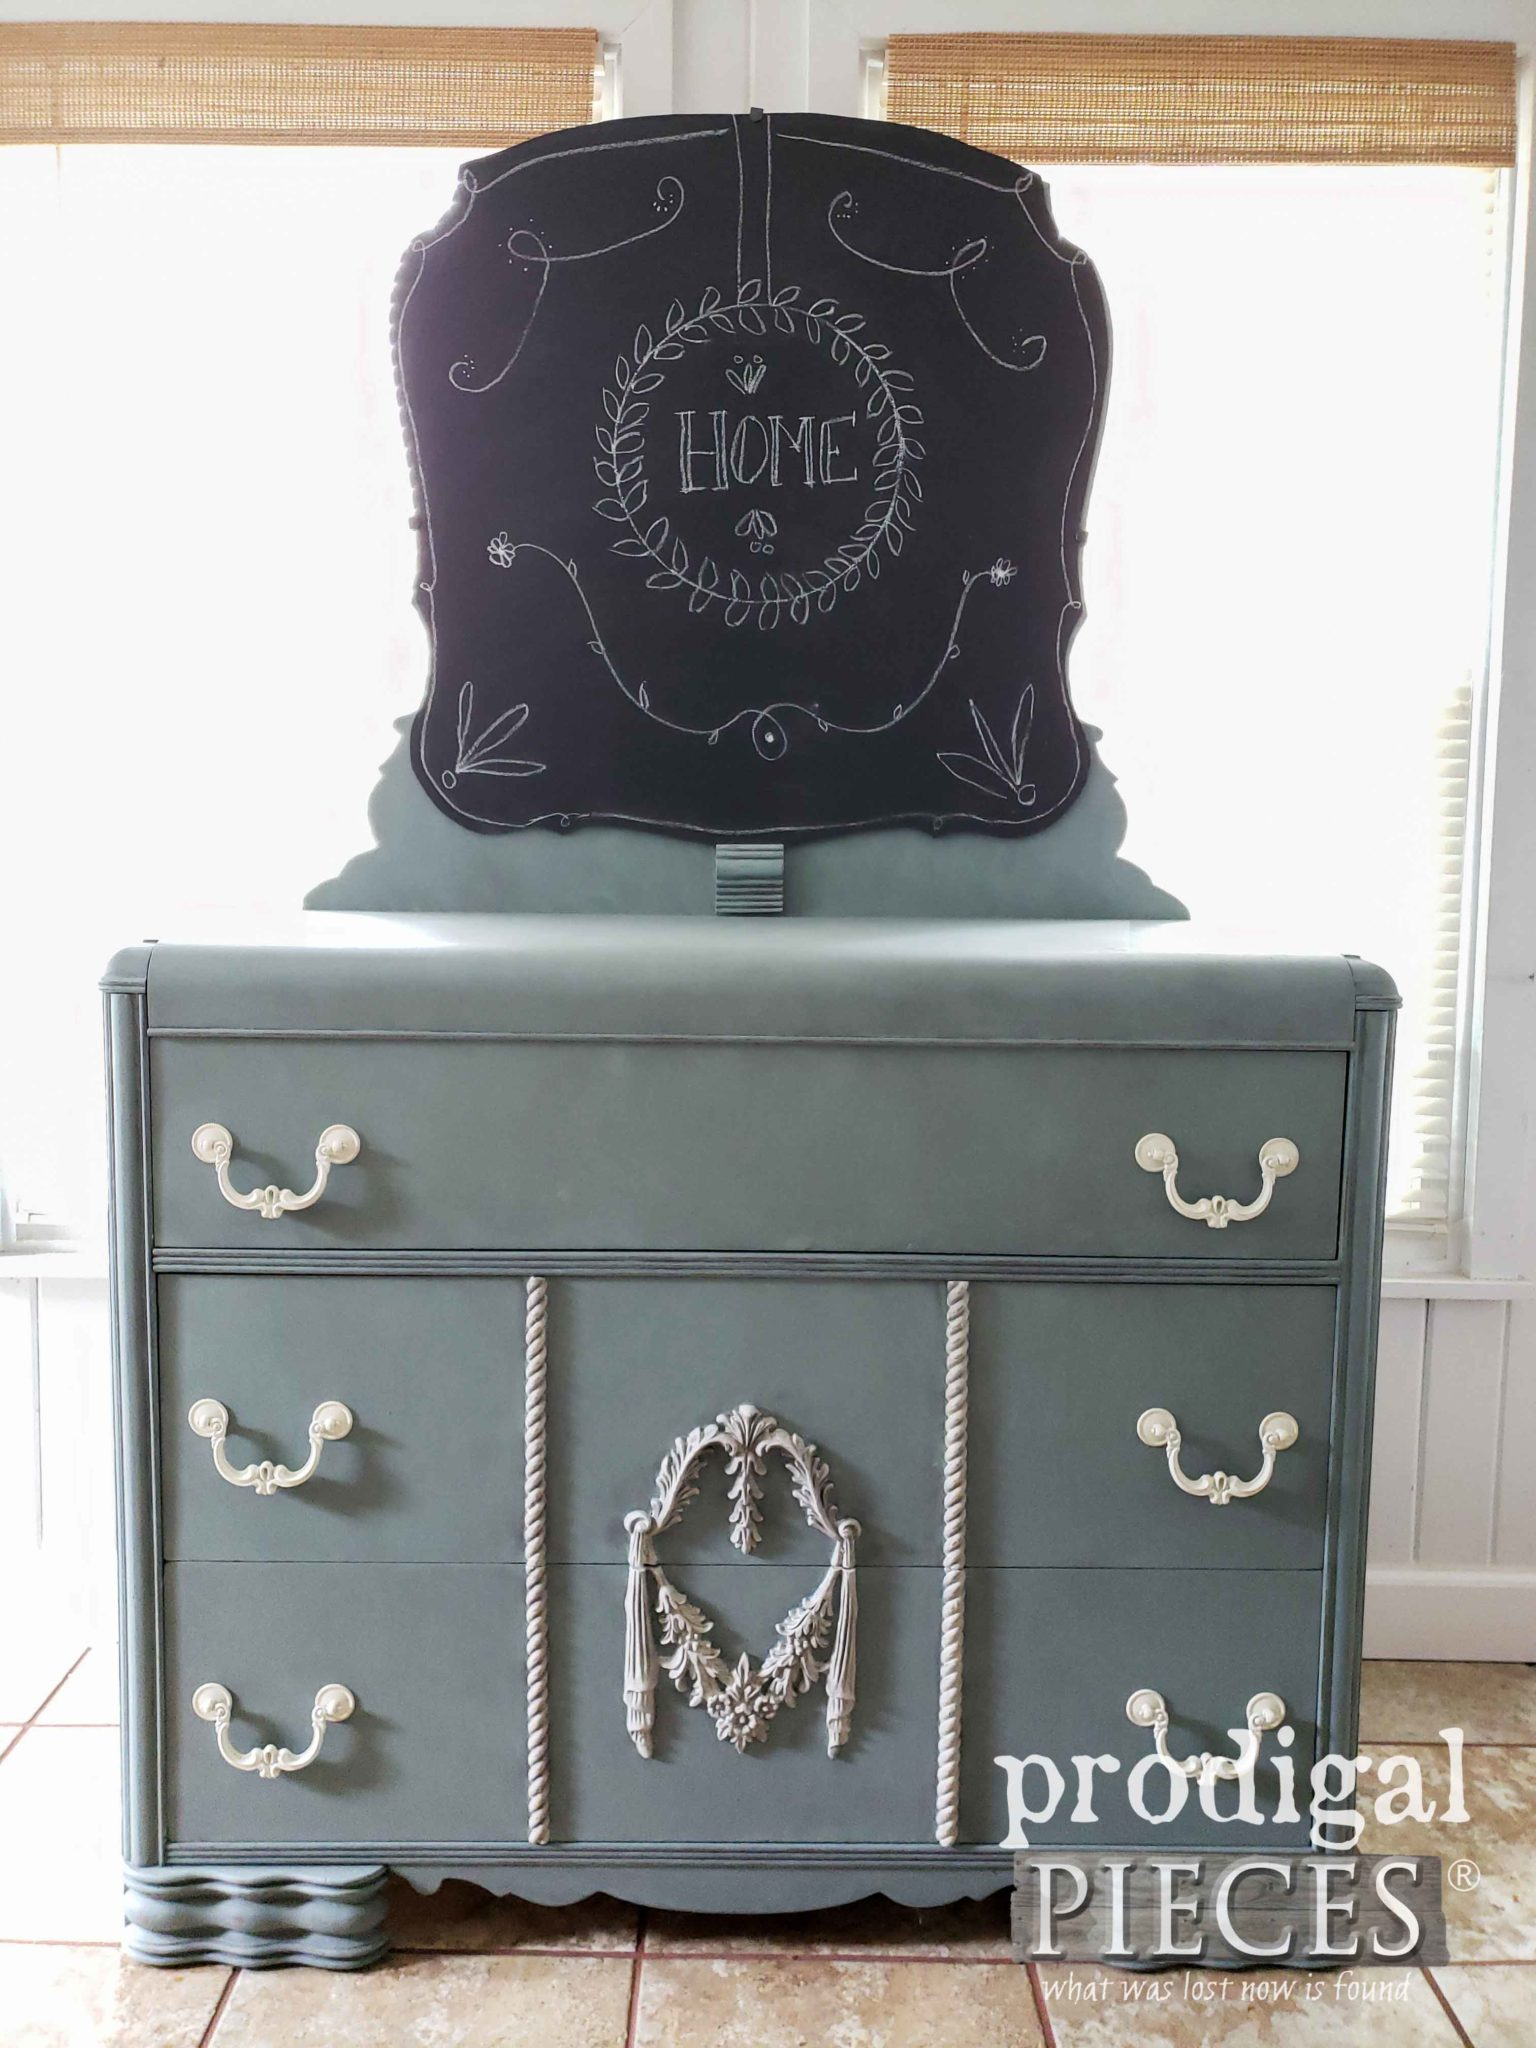 Vintage Waterfall Dresser with Chalkboard by Prodigal Pieces | prodigalpieces.com